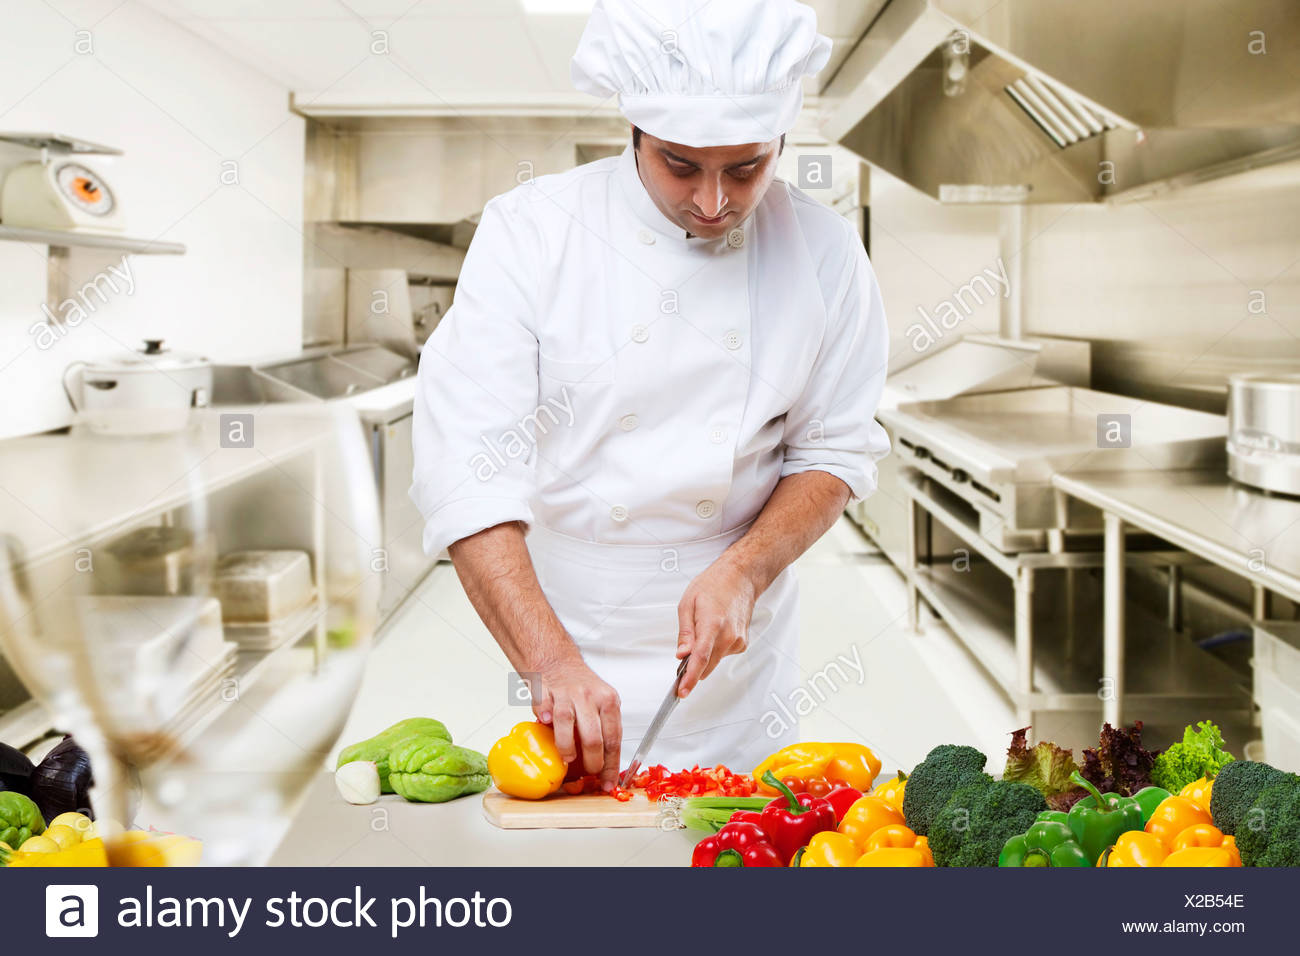 Chef cutting vegetables in the kitchen Stock Photo: 276840718 - Alamy